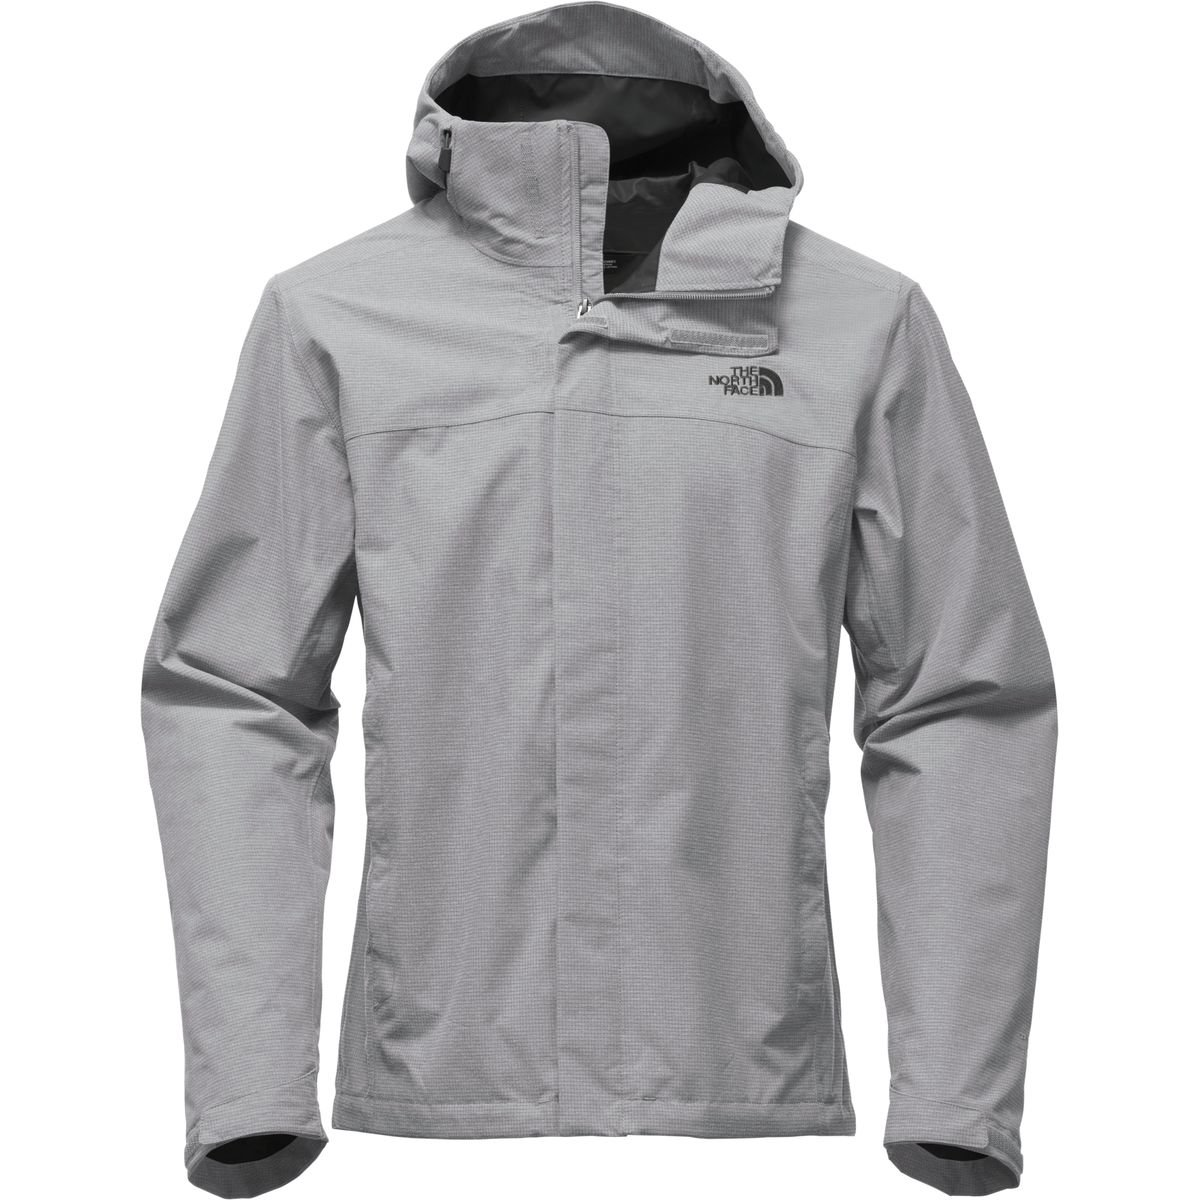 8aa1297cf The North Face Men's Venture 2 Jacket Tall - Mid Grey Ripstop Heather/Mid  Grey Ripstop Heather - L (Past Season)